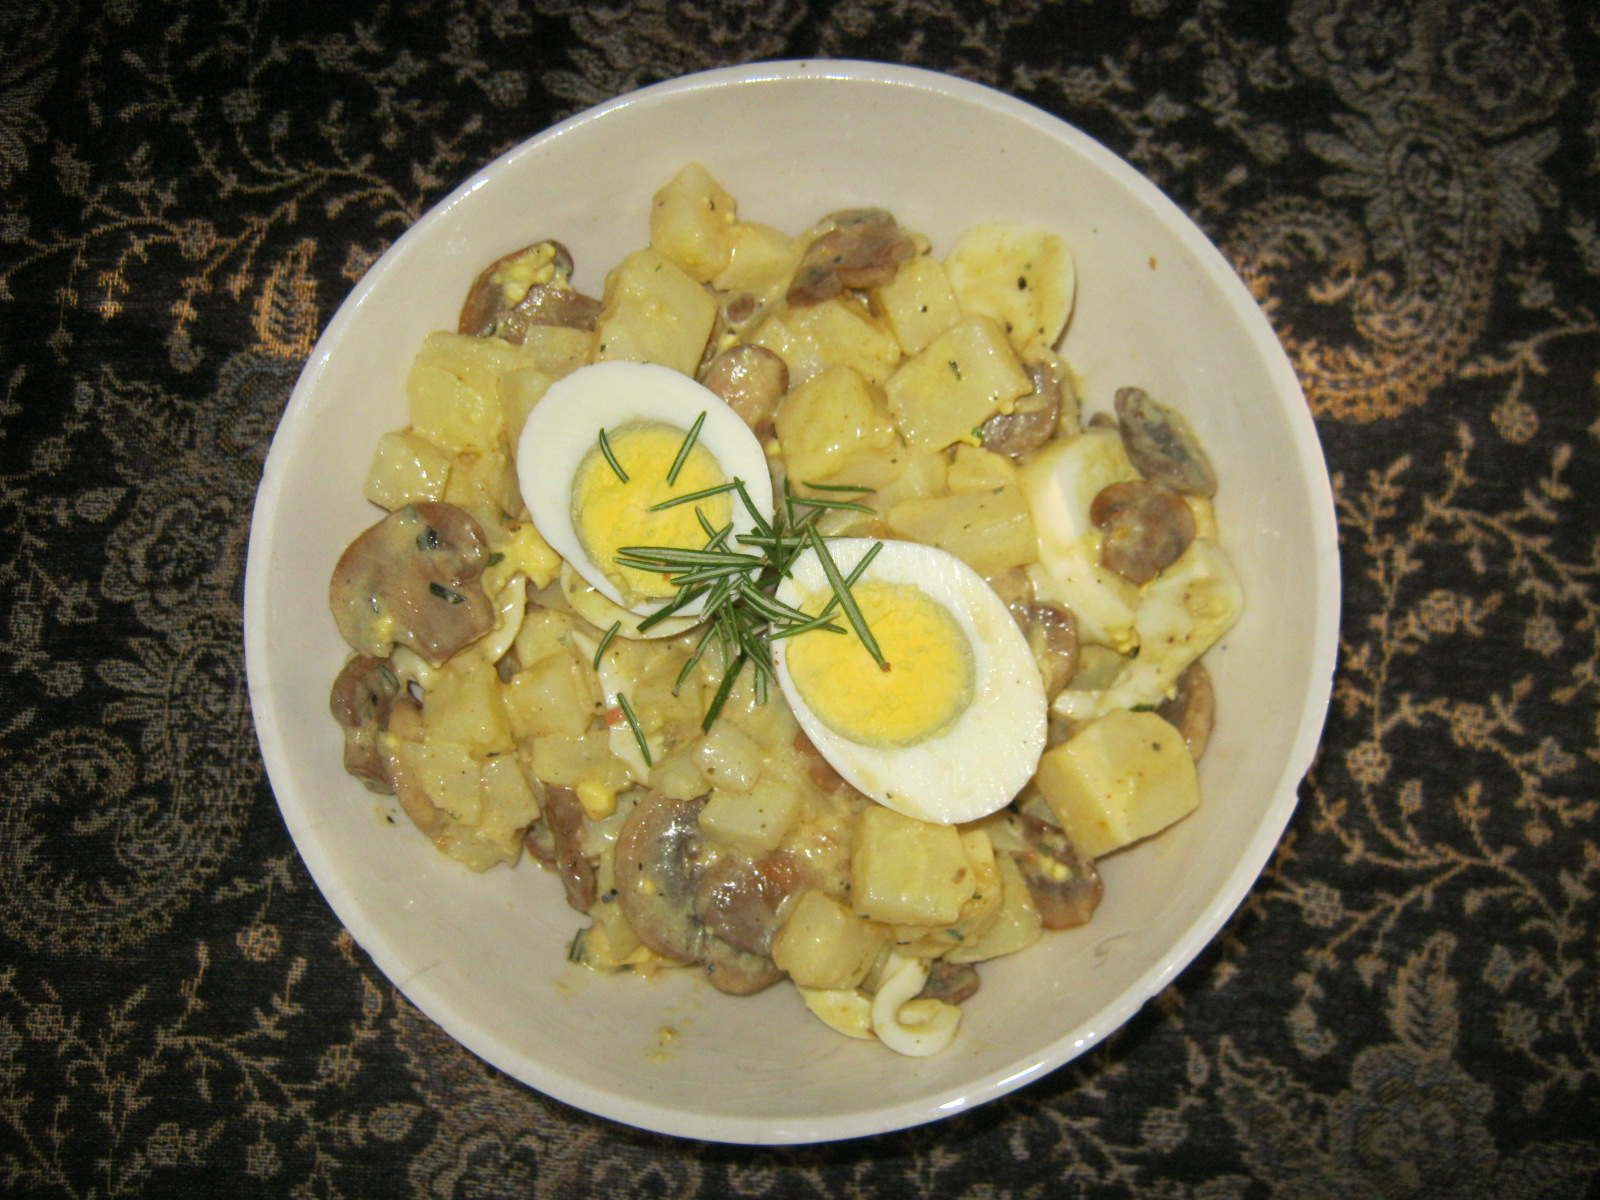 Moms homemade potato salad with eggs and mushrooms